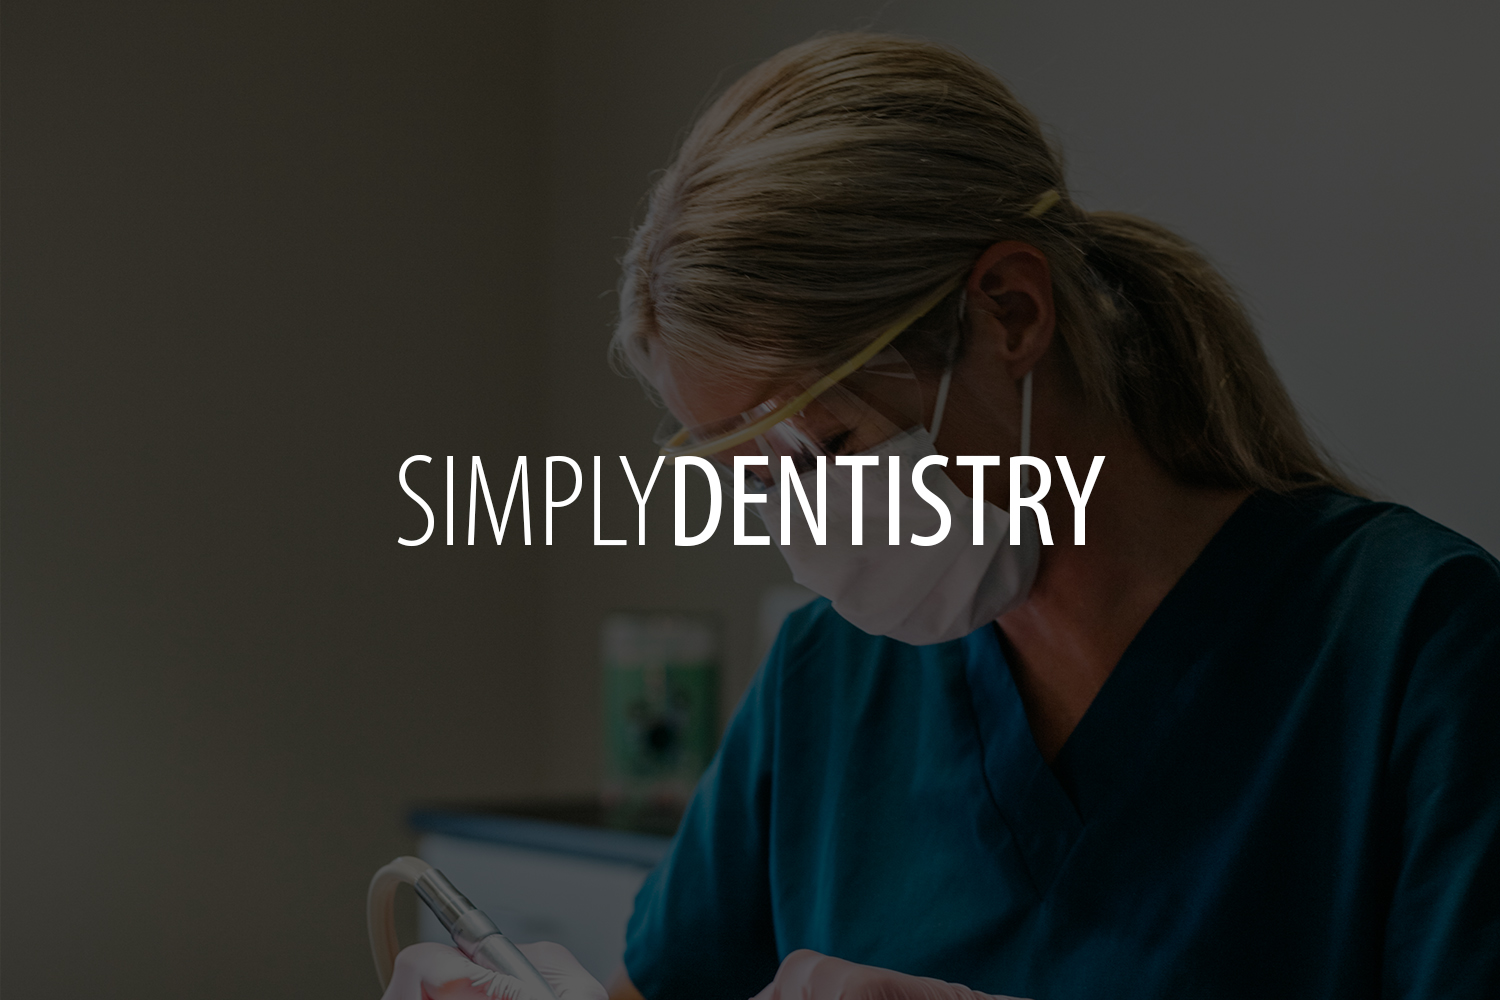 wilcomedia-simply-dentistry-case-study-overview1.jpg